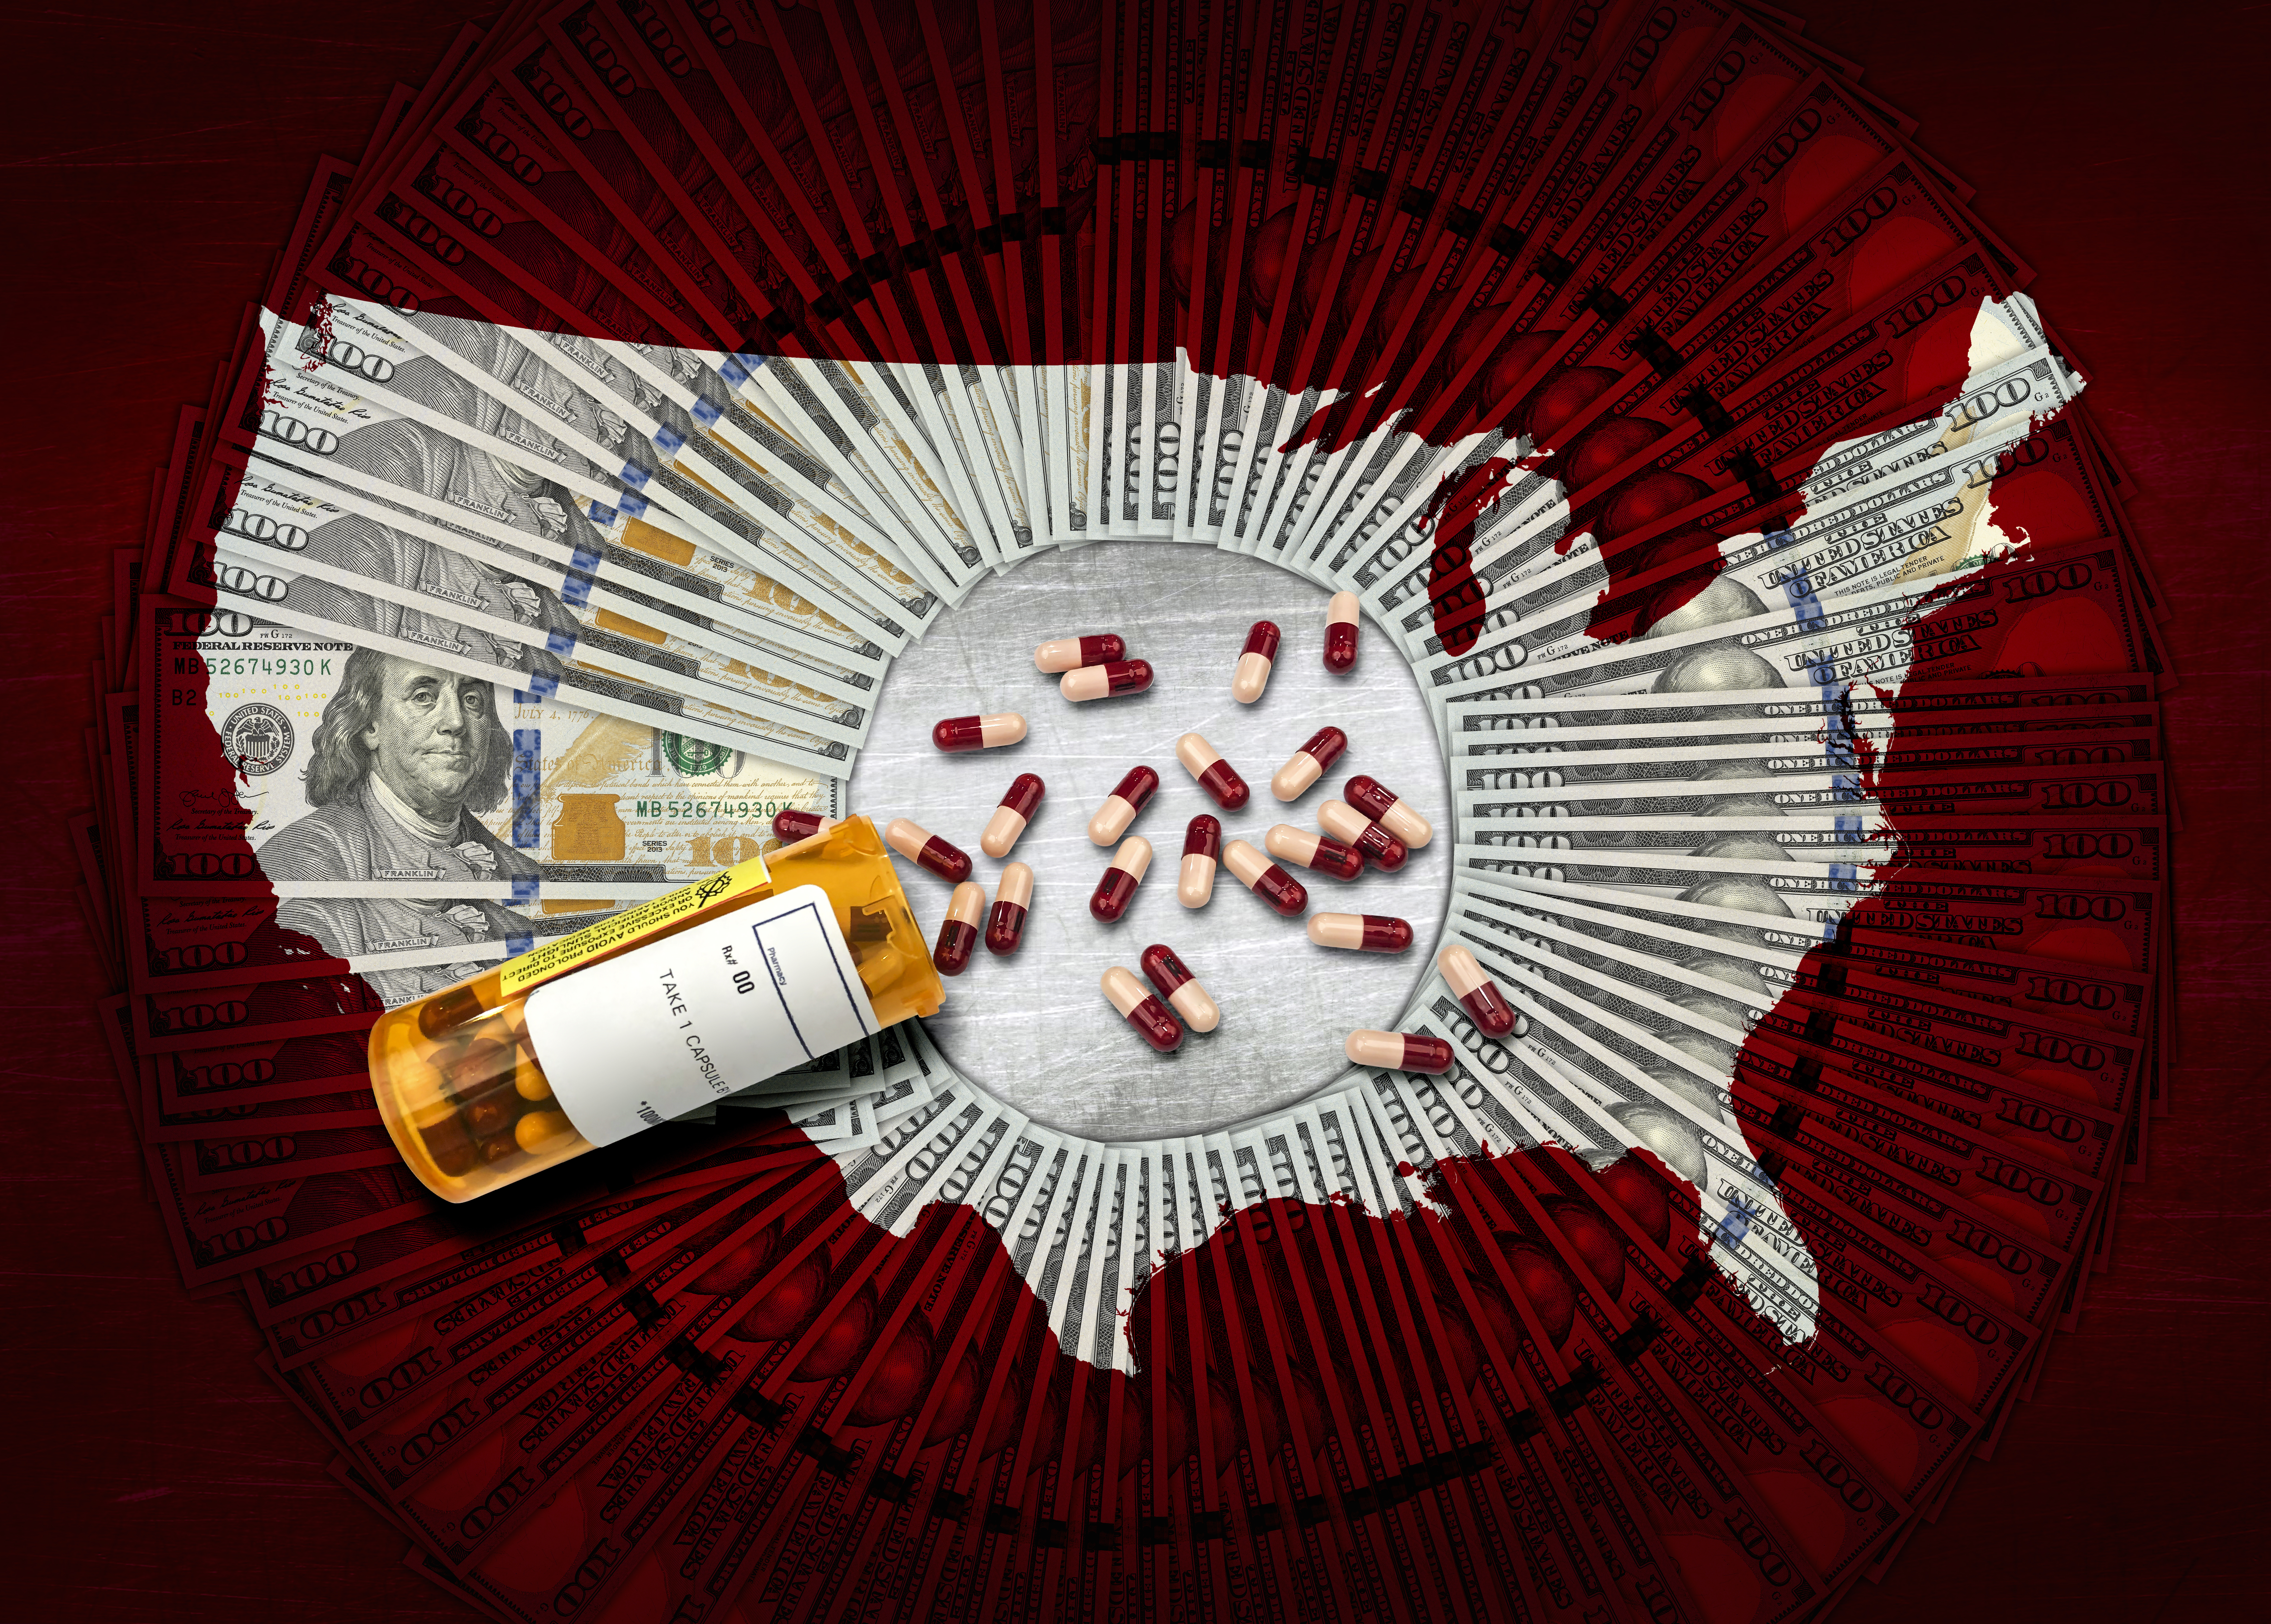 Photo illustration of a spilled bottle of prescription pills on top of a map of the United States.